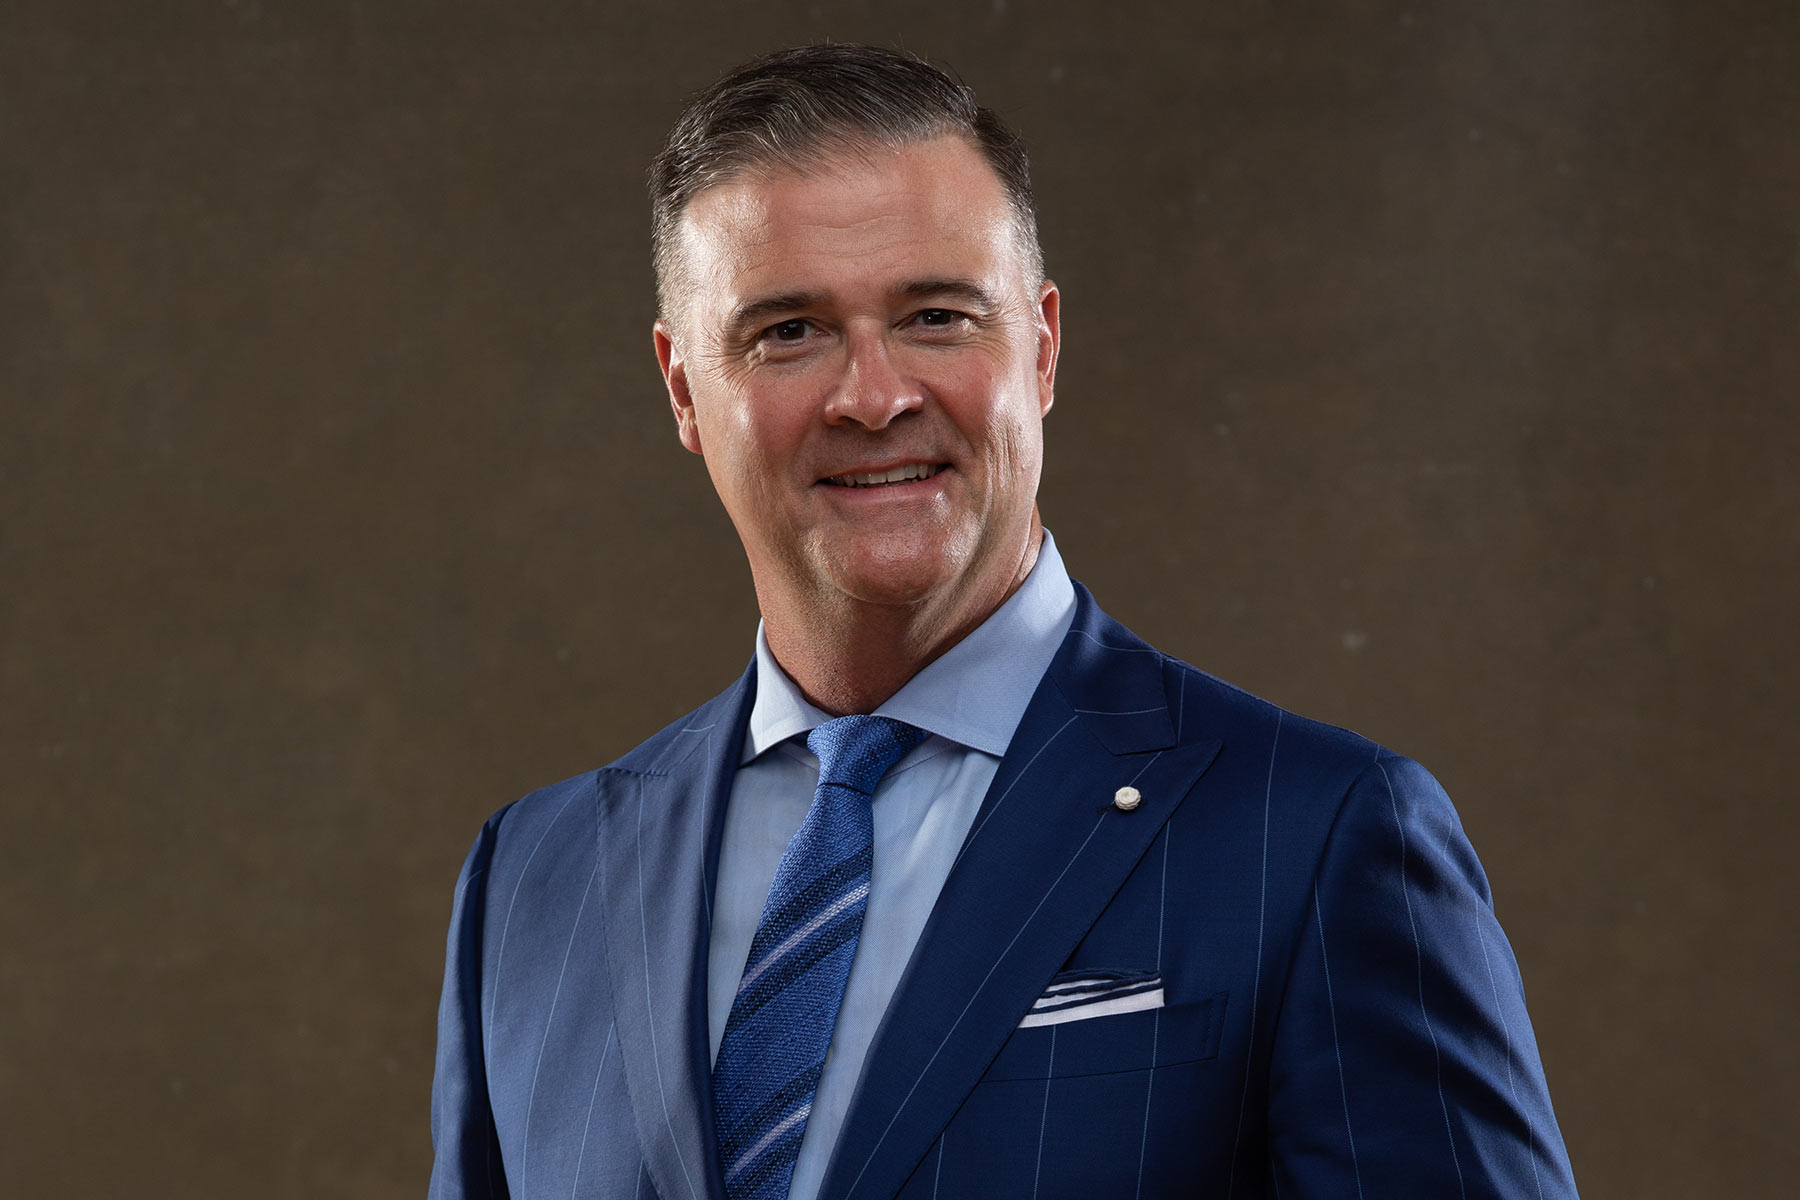 A formal portrait of Coach Mitchell in a blue suit.